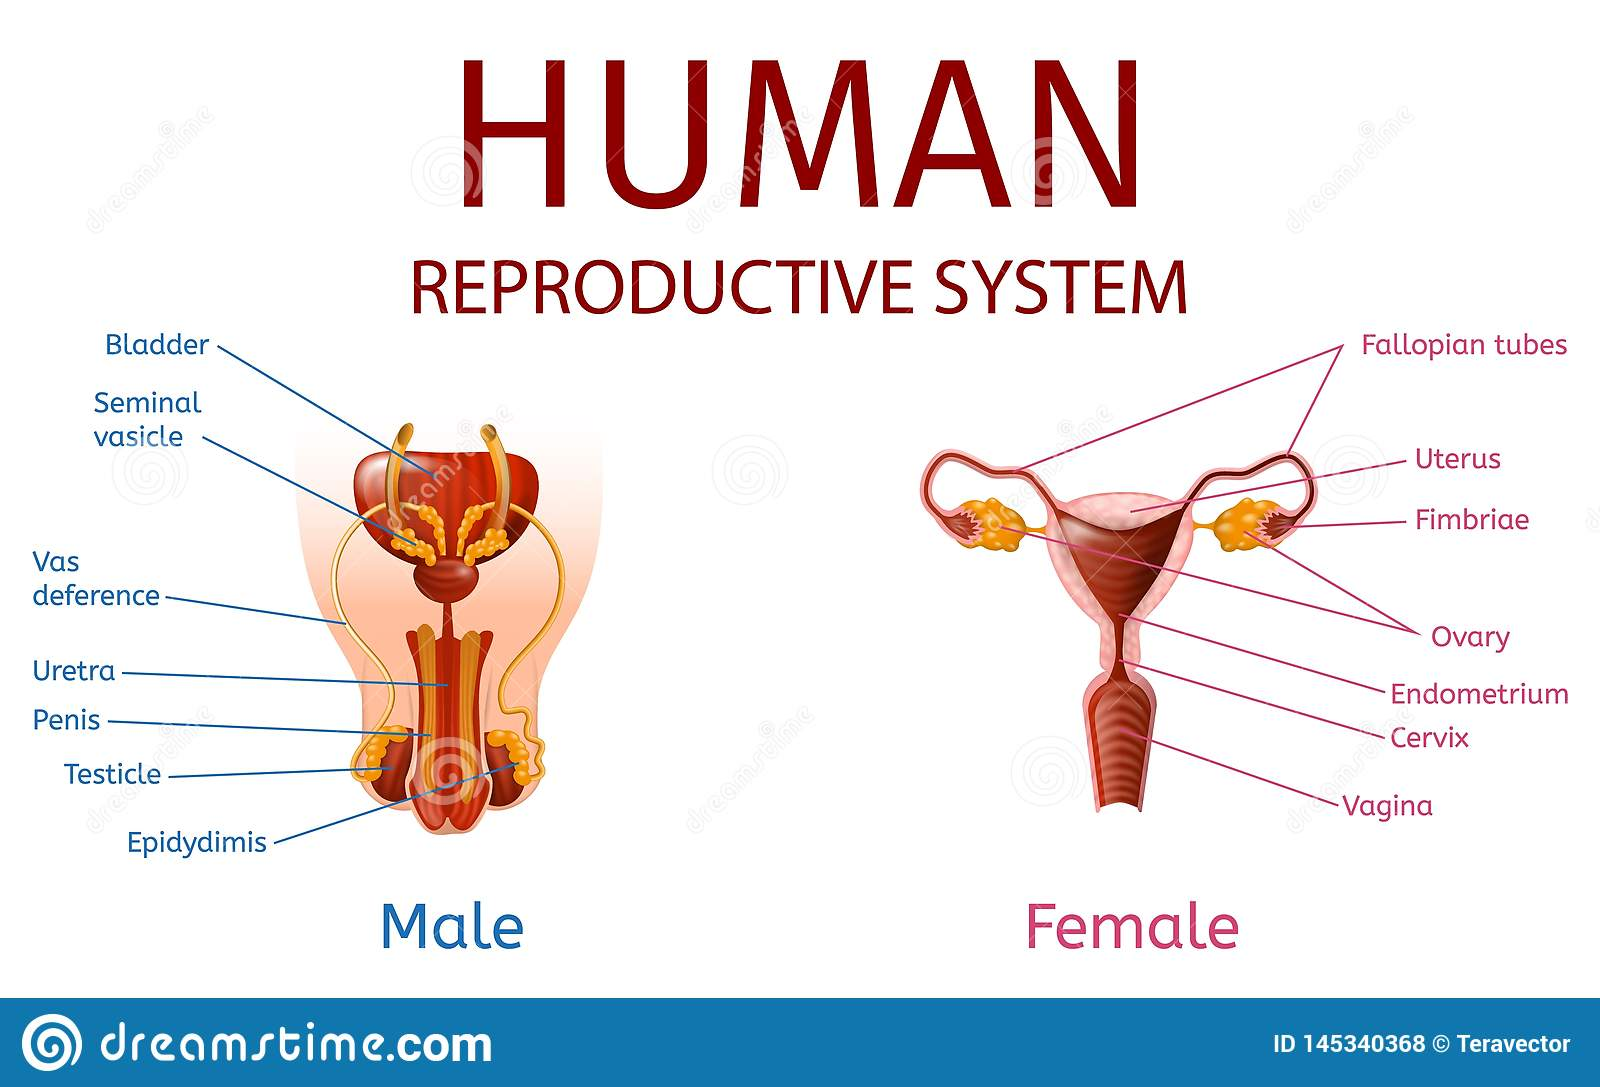 Male and female sex organs